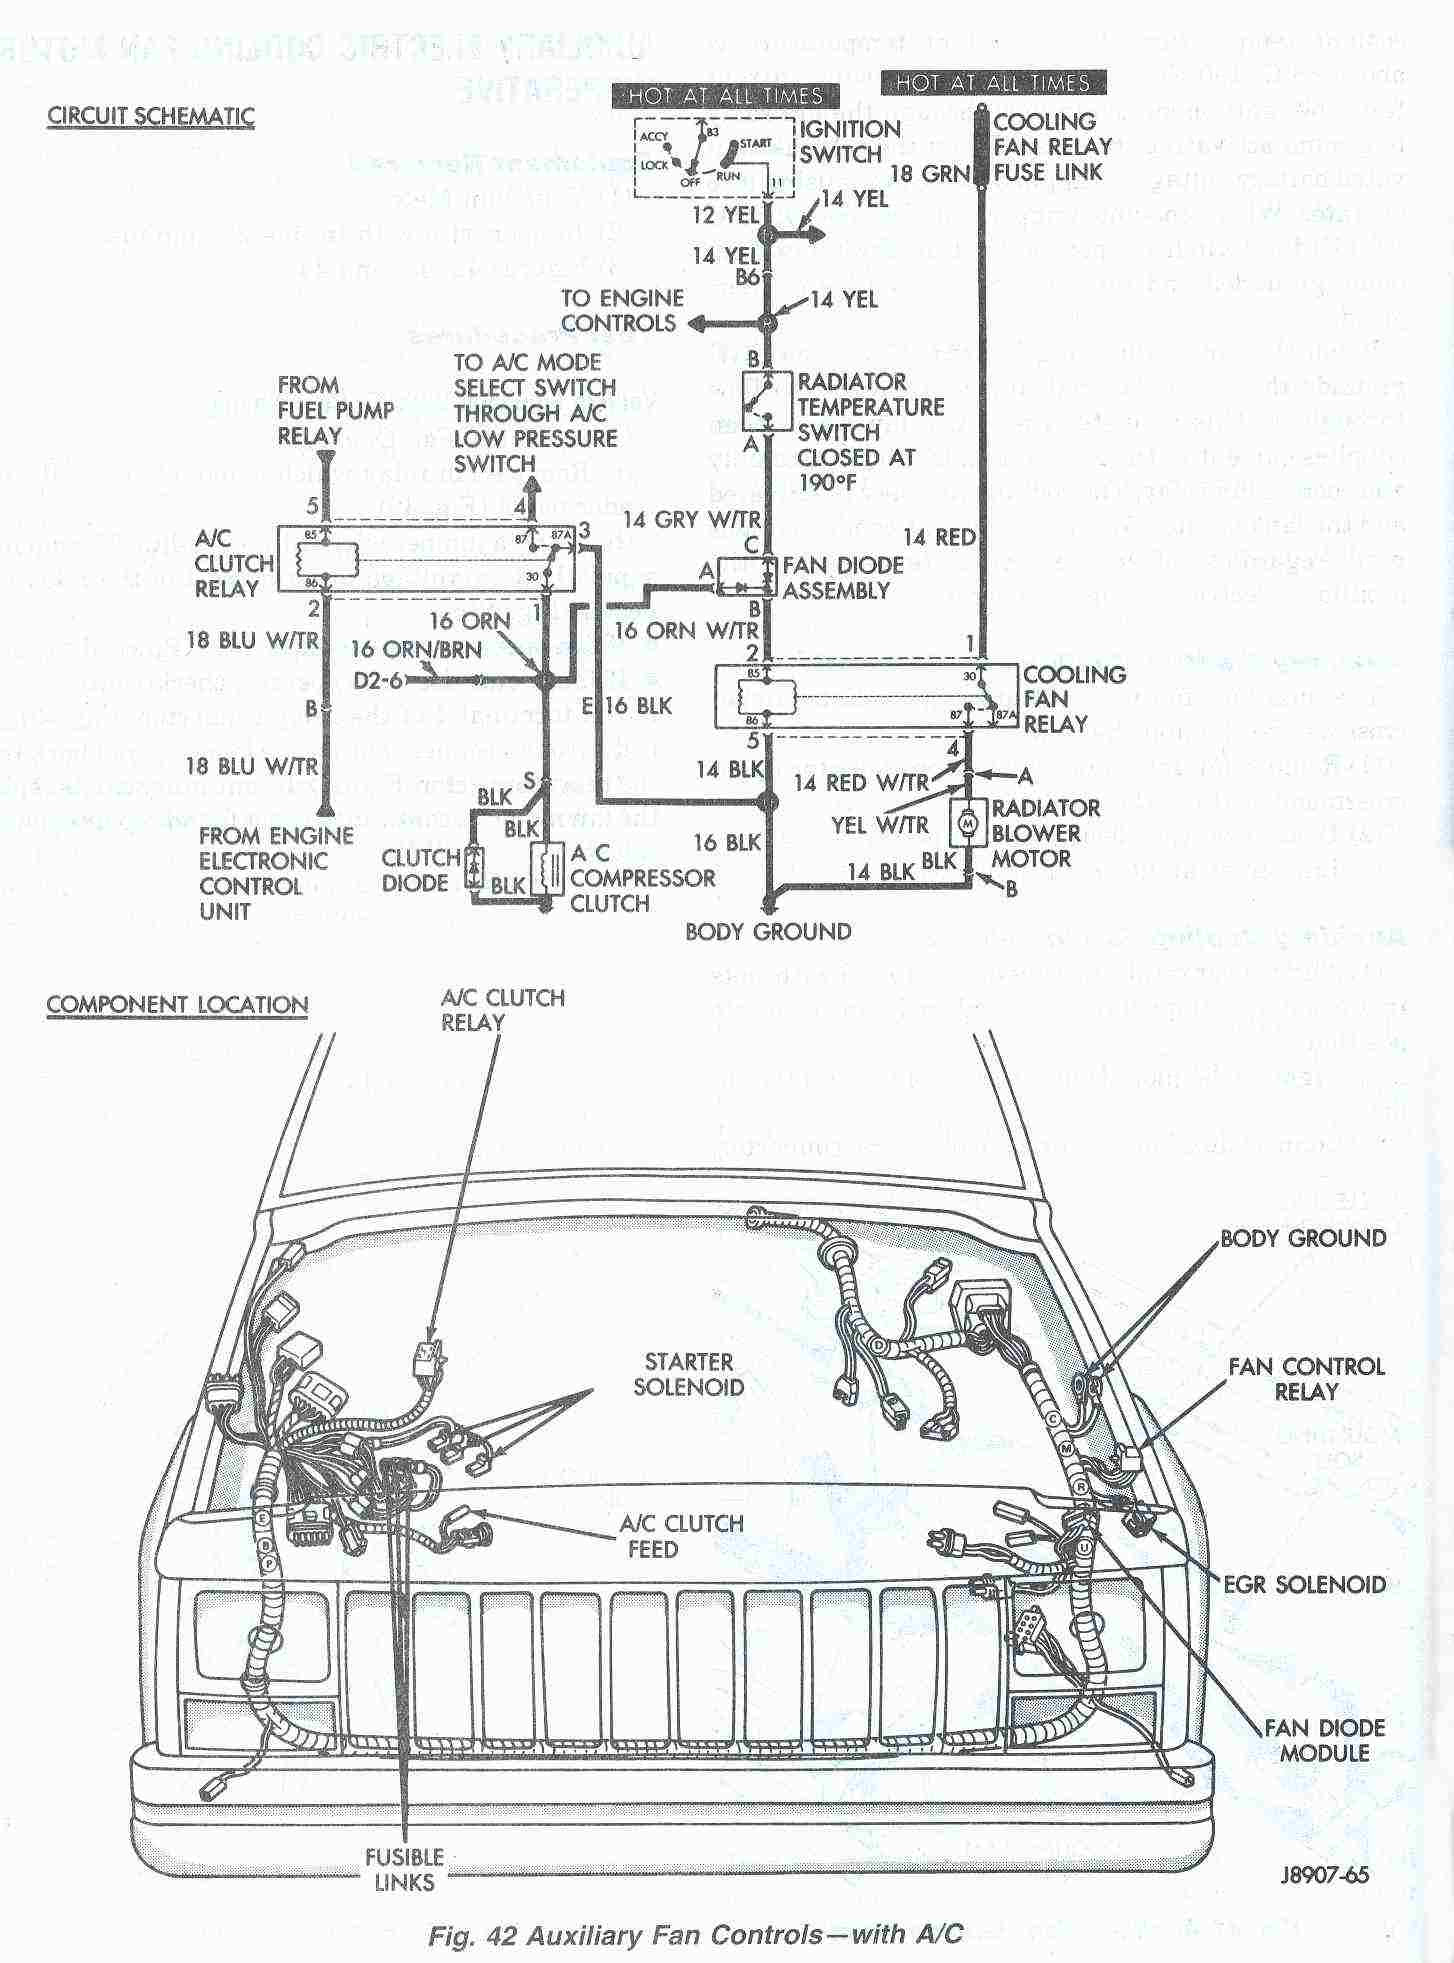 2003 Jeep Grand Cherokee Laredo Wiring Diagram